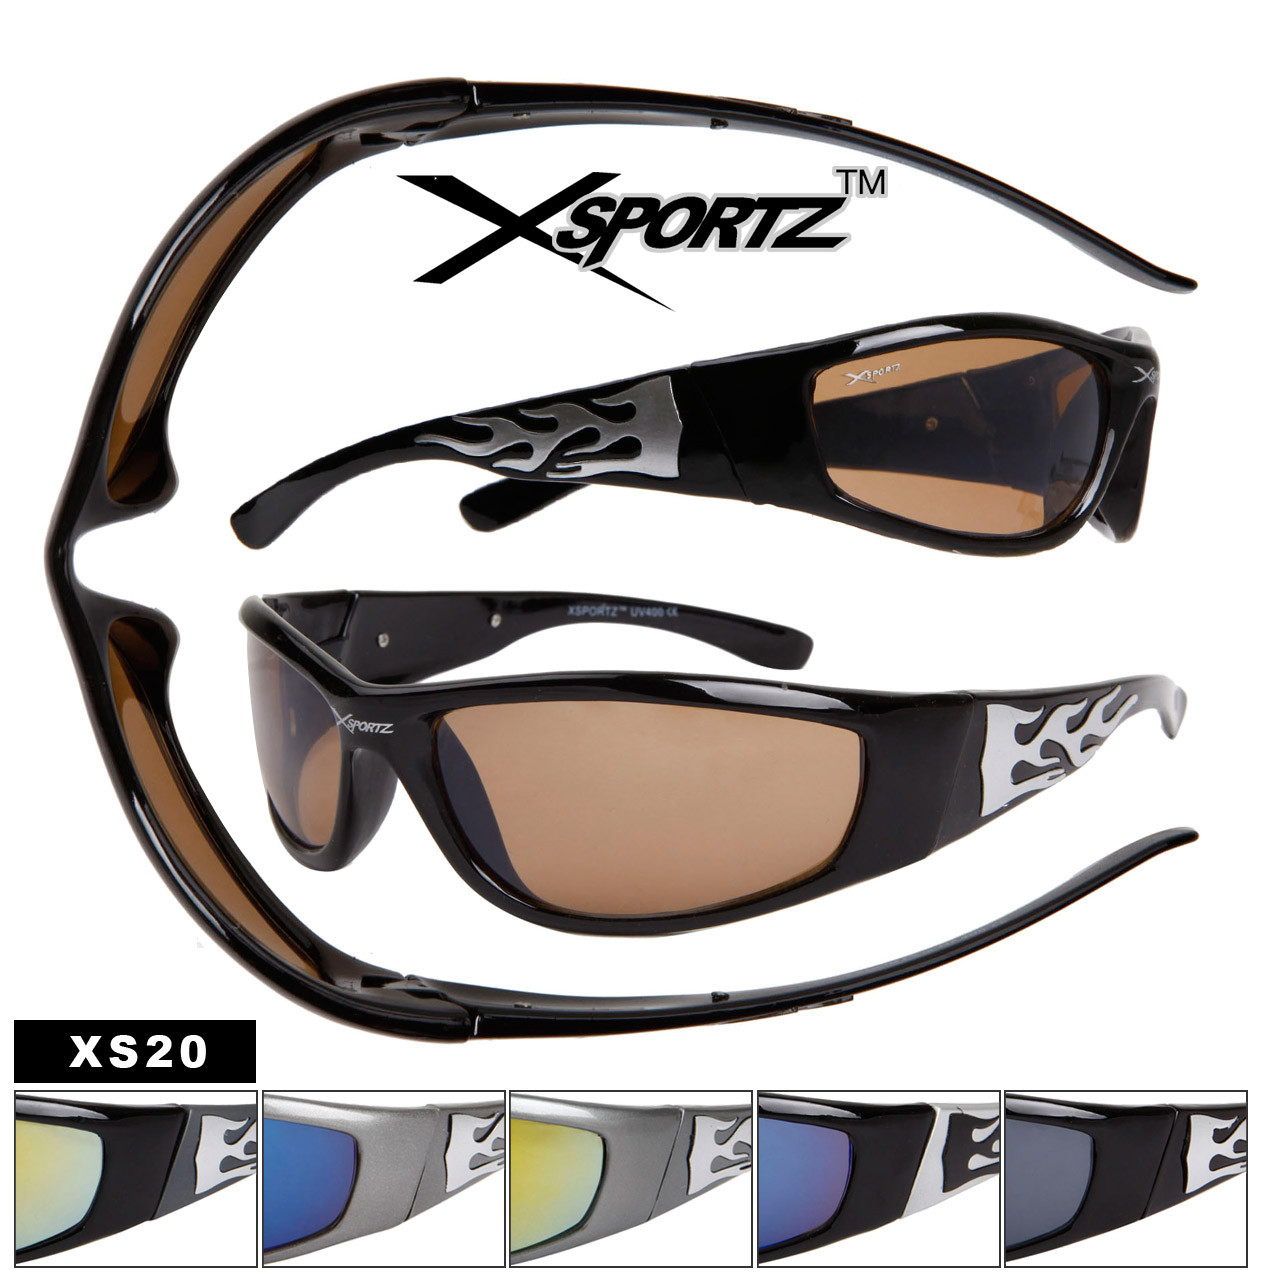 Xsportz Sports Sunglasses with Flames XS20 (Assorted Colors) (12 pcs.)